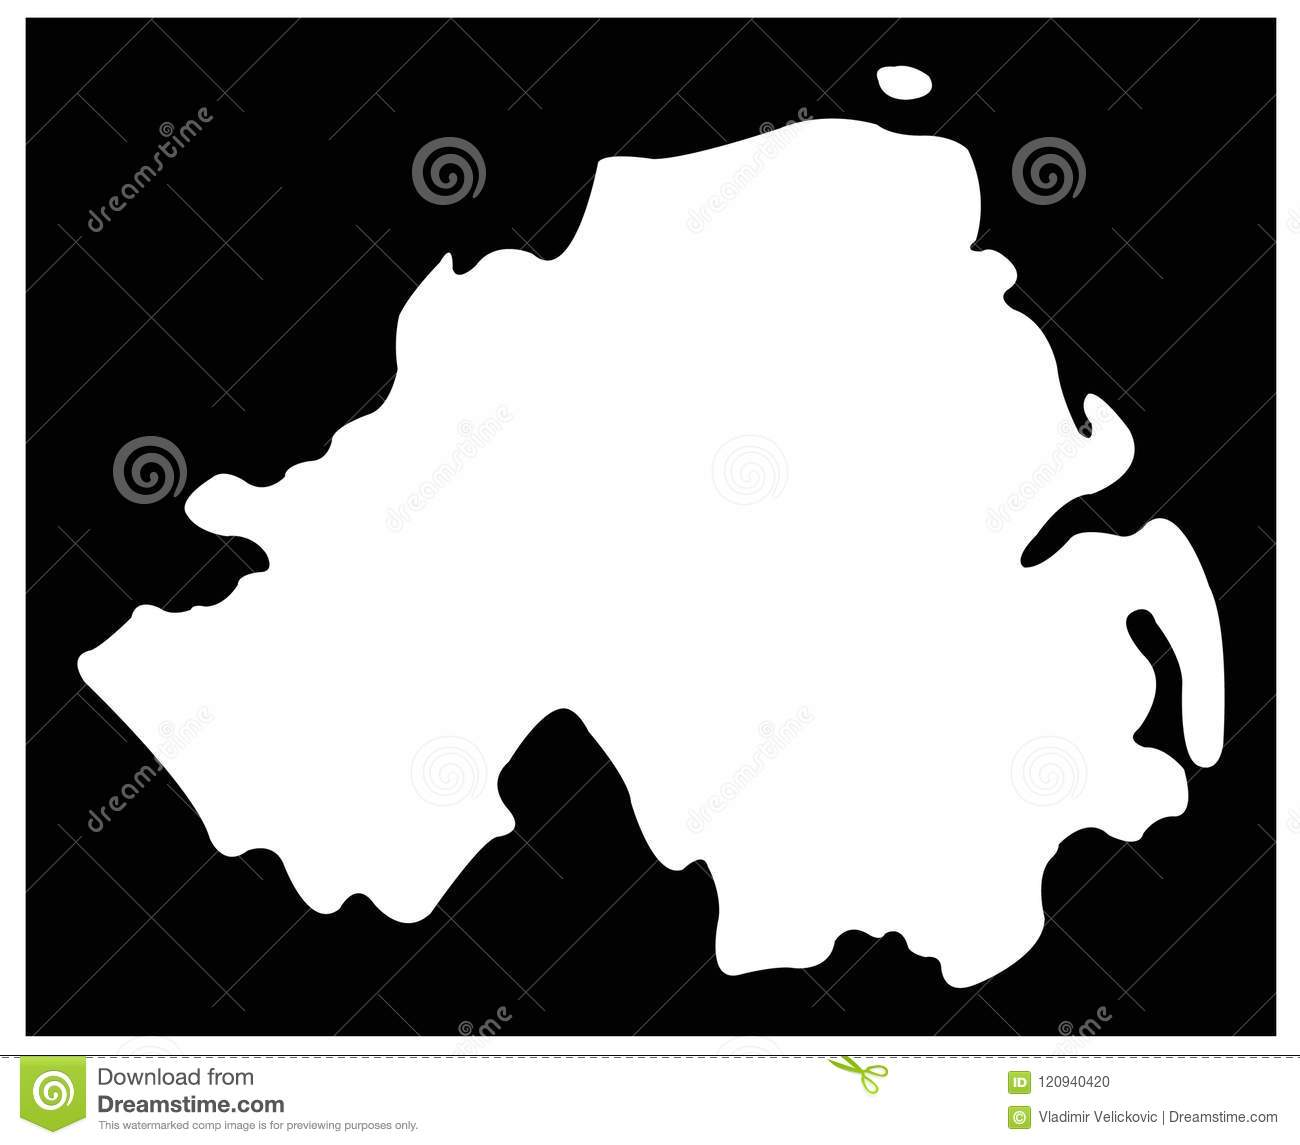 Northern Ireland Map - Part Of The United Kingdom In Europe ... on map of gibraltar, map of southern ireland, map of county mayo, map of austria, map of israel, map of united kingdom, map of scotland, map of england, map of belfast, map of wales, map of ireland counties, map of afghanistan, map of europe, map of ballybofey, map of dublin, map of giant's causeway, map of uk, map of ireland map, map of ulster, map of us and ireland,